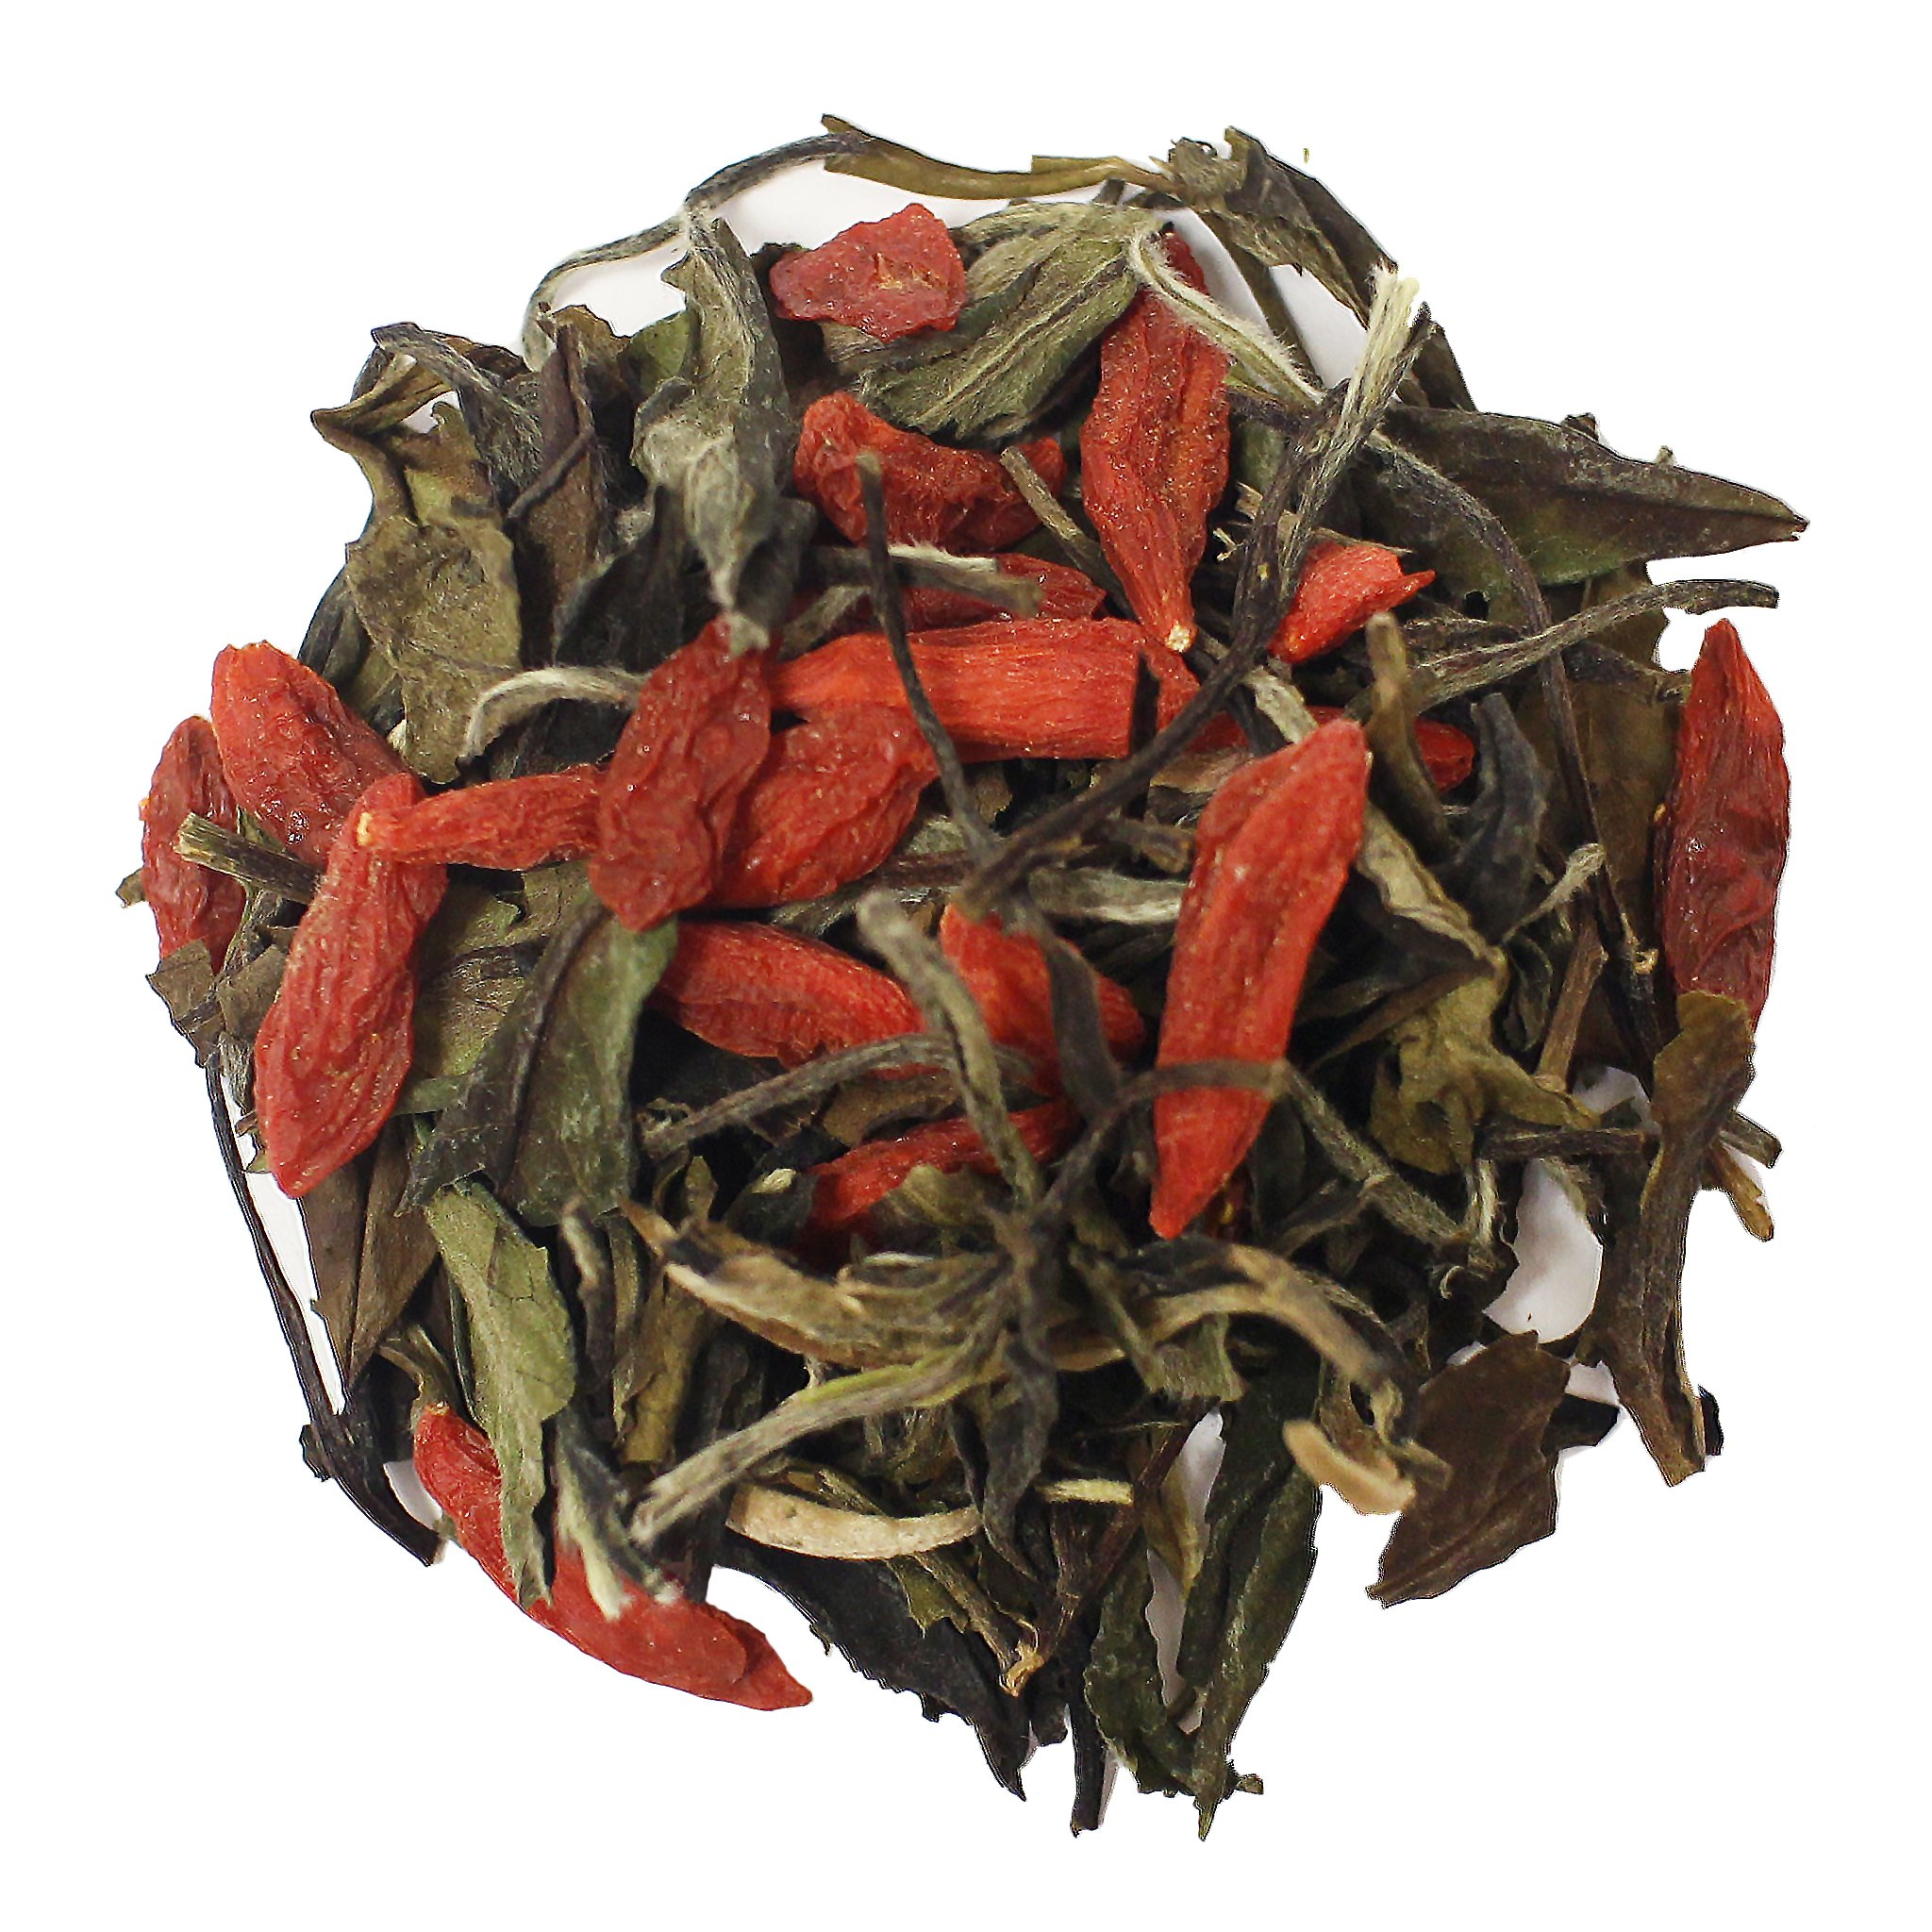 The Tea Farm - Goji White Tea - Loose Leaf White Tea (1 Pound Bag)